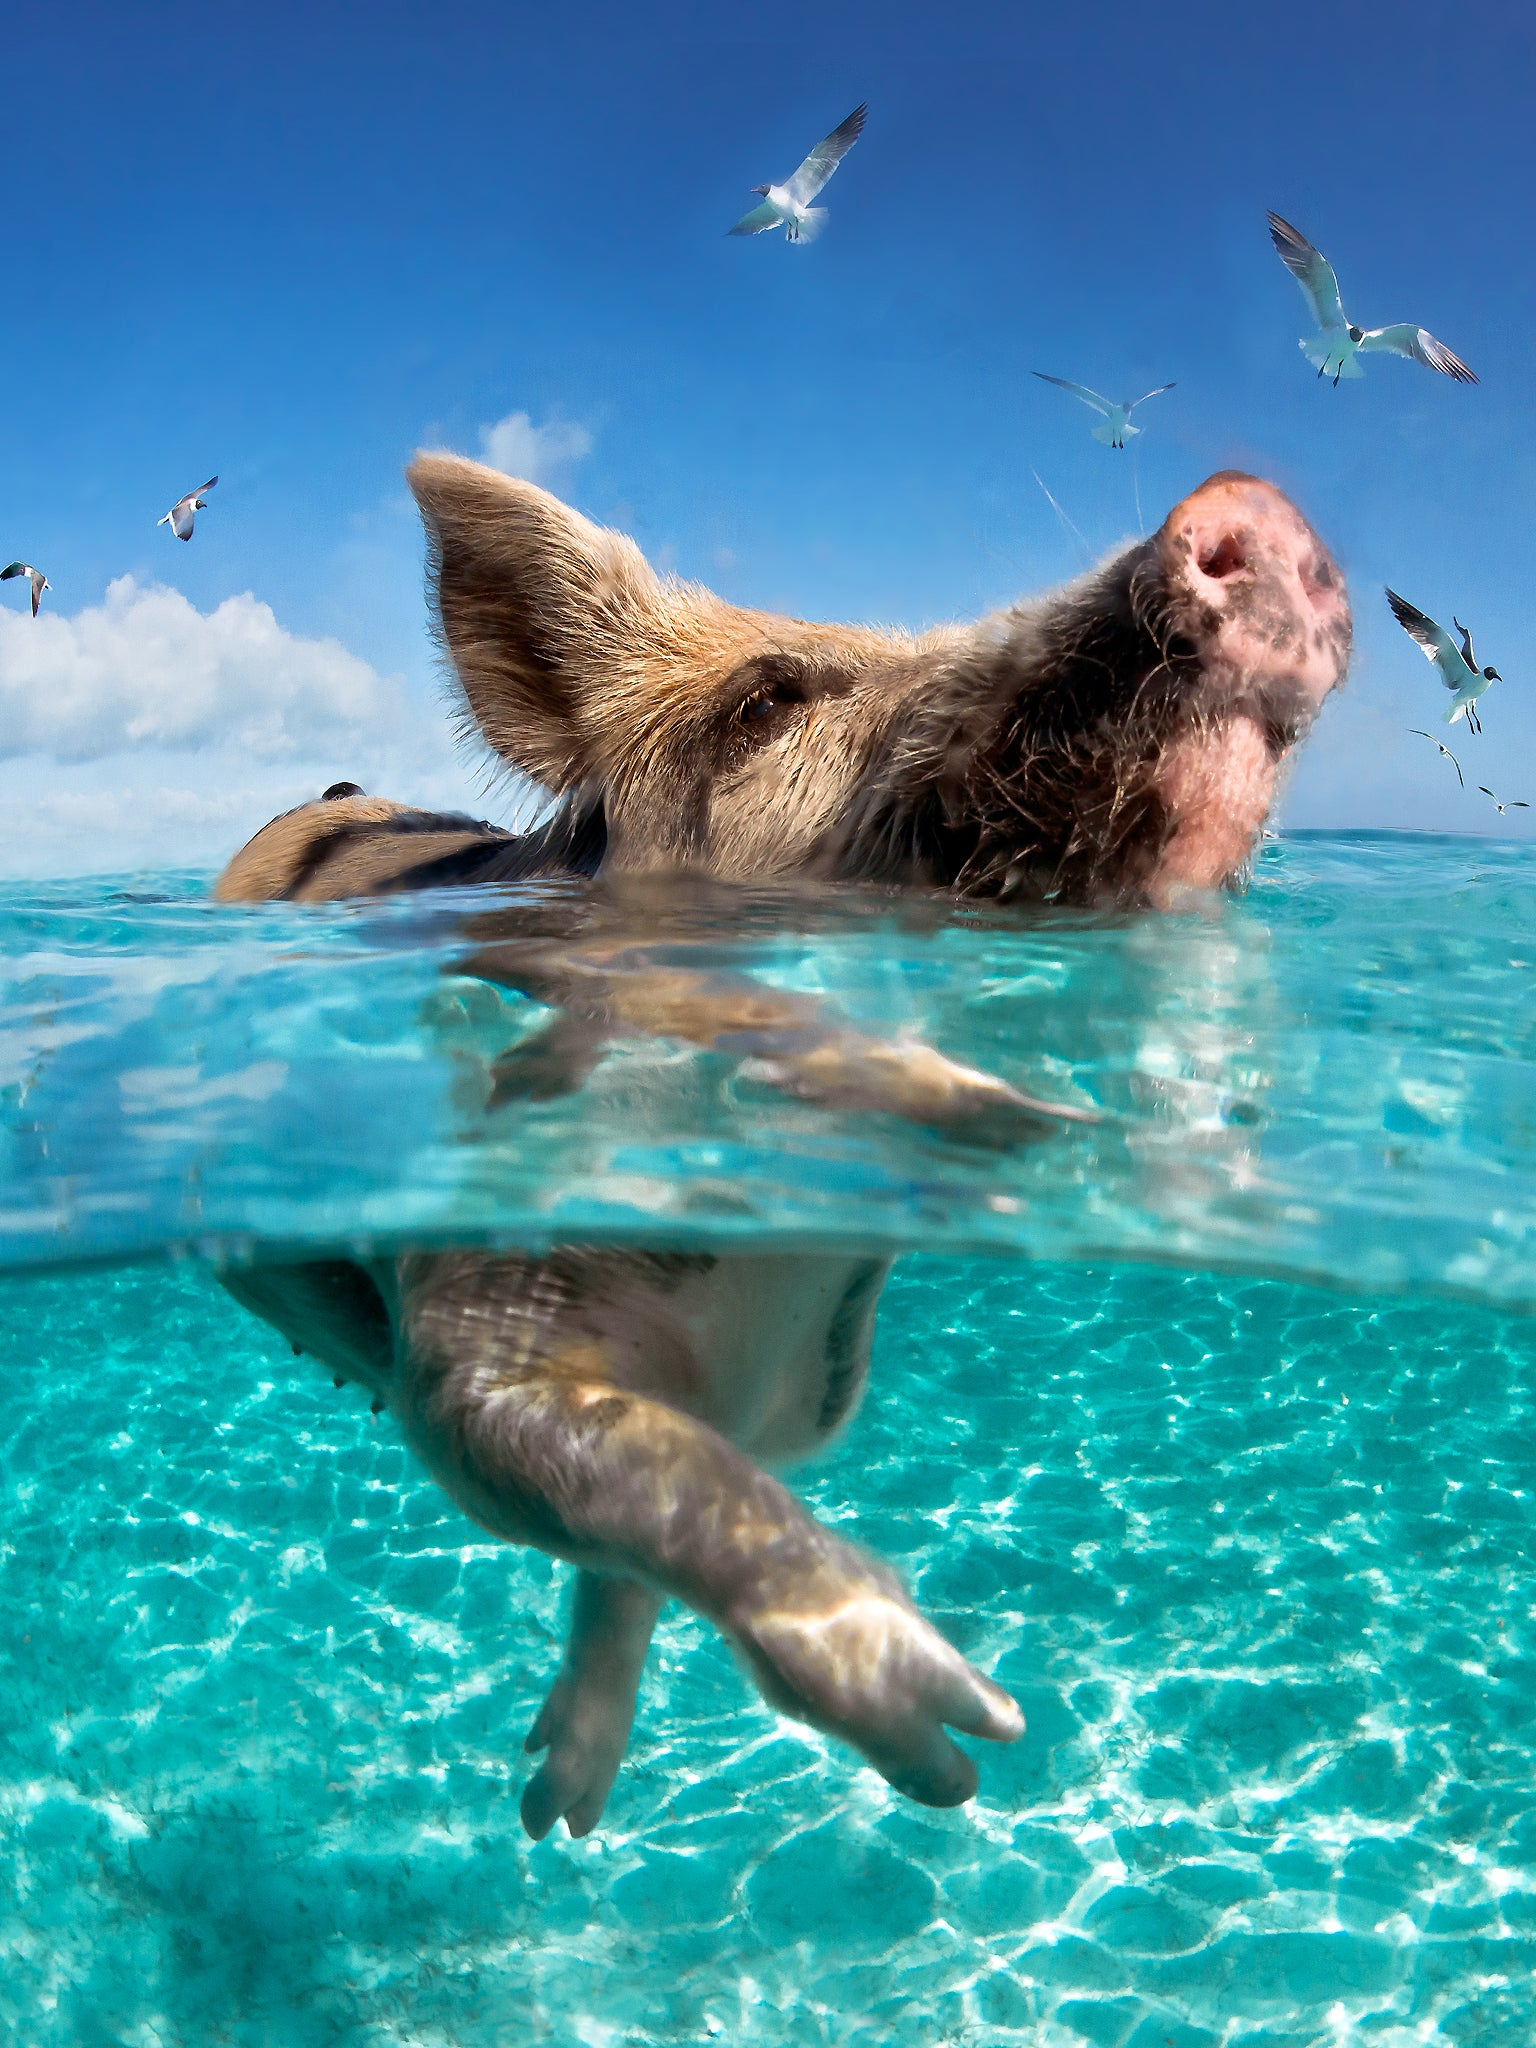 'If Pigs Could Swim'